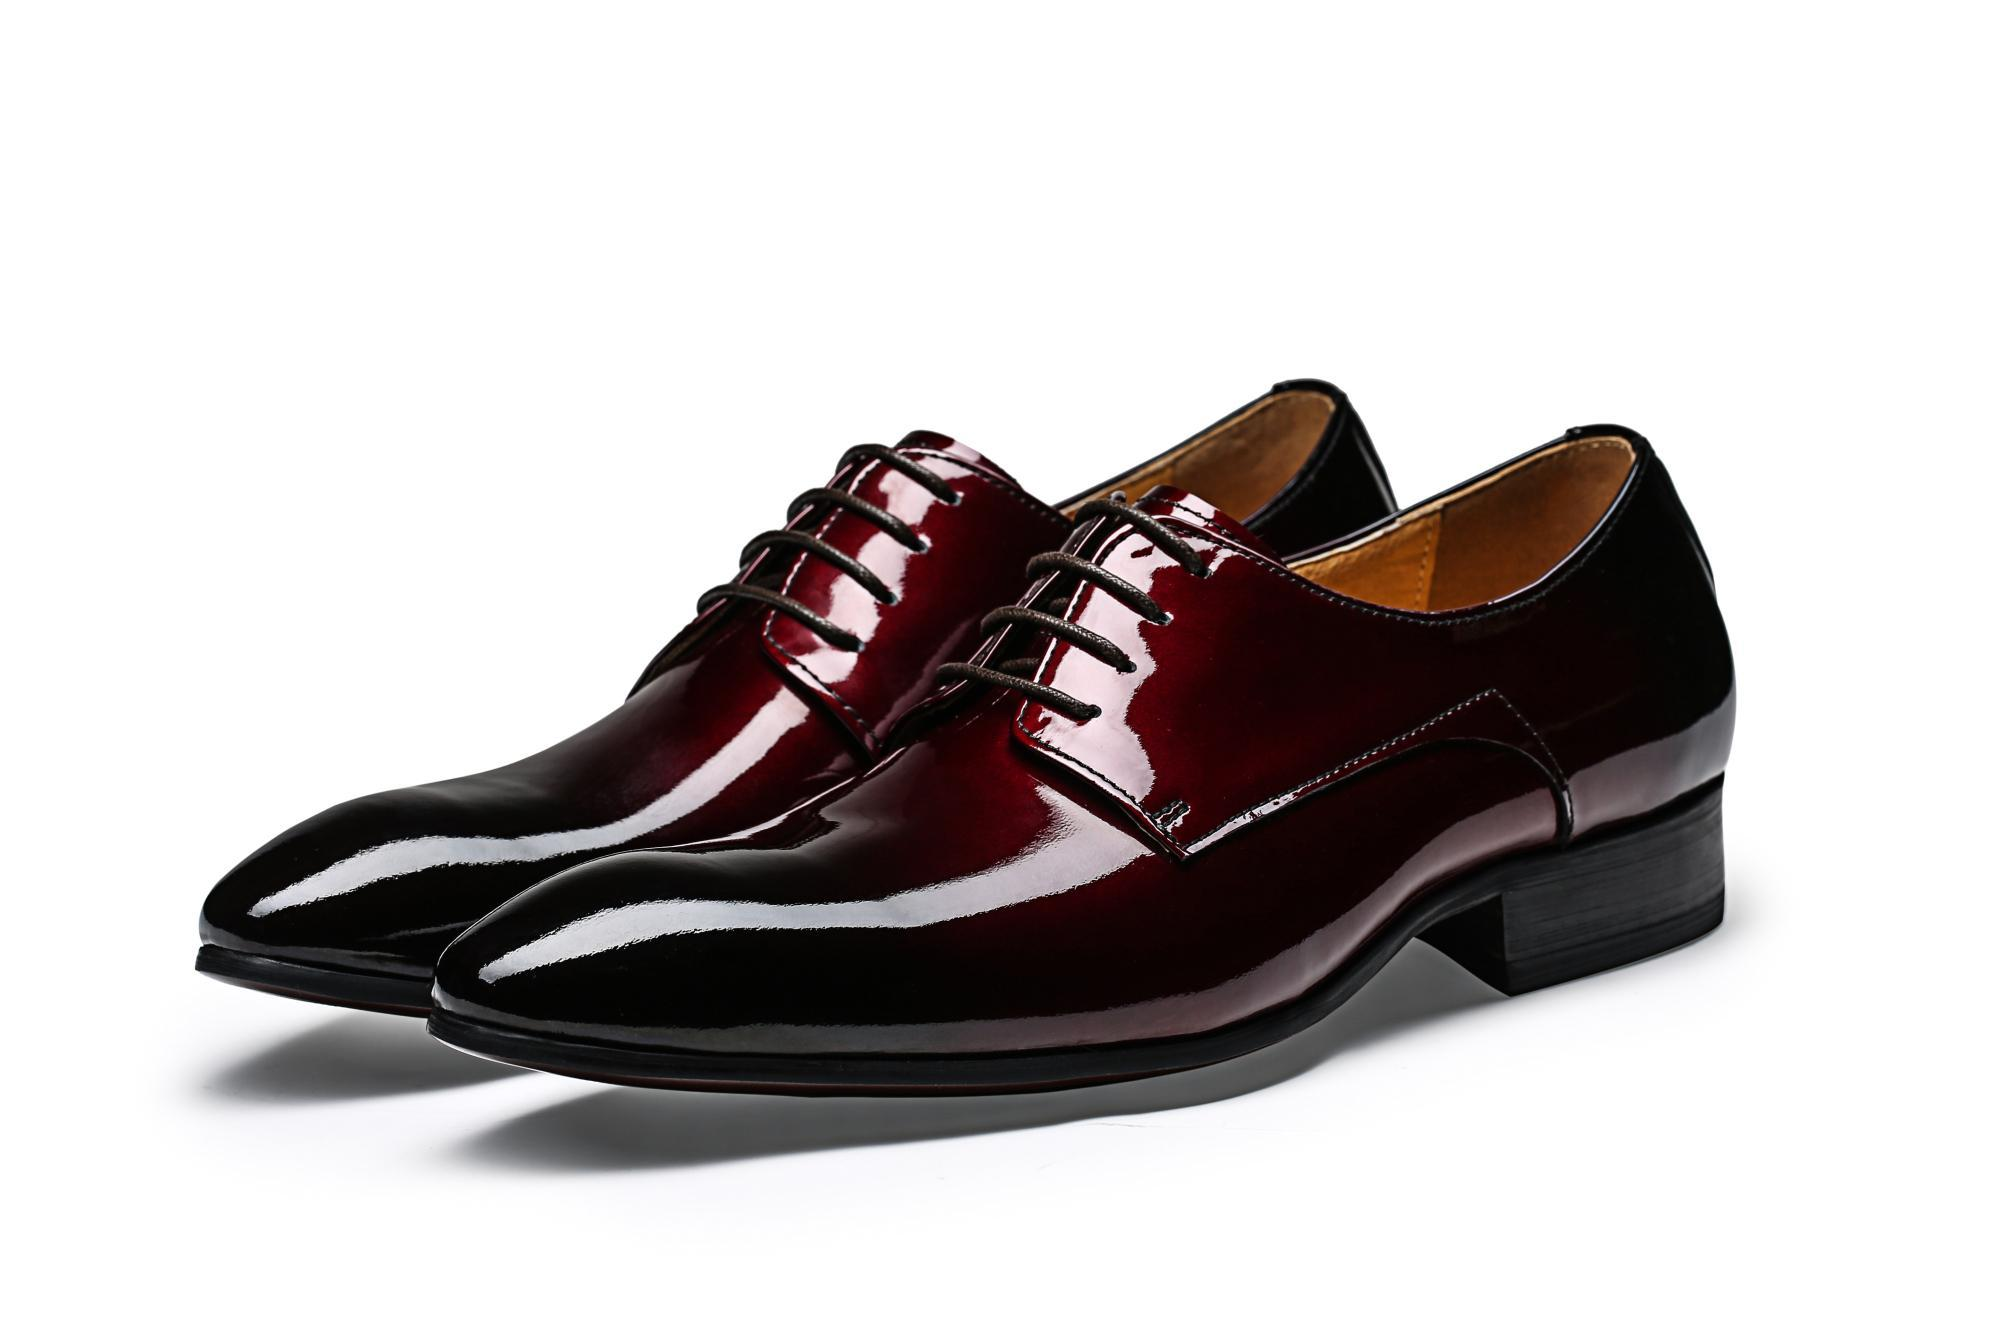 Cool Pointed Toe Wine Red / Black Derby Shoes Mens Dress Shoes ...